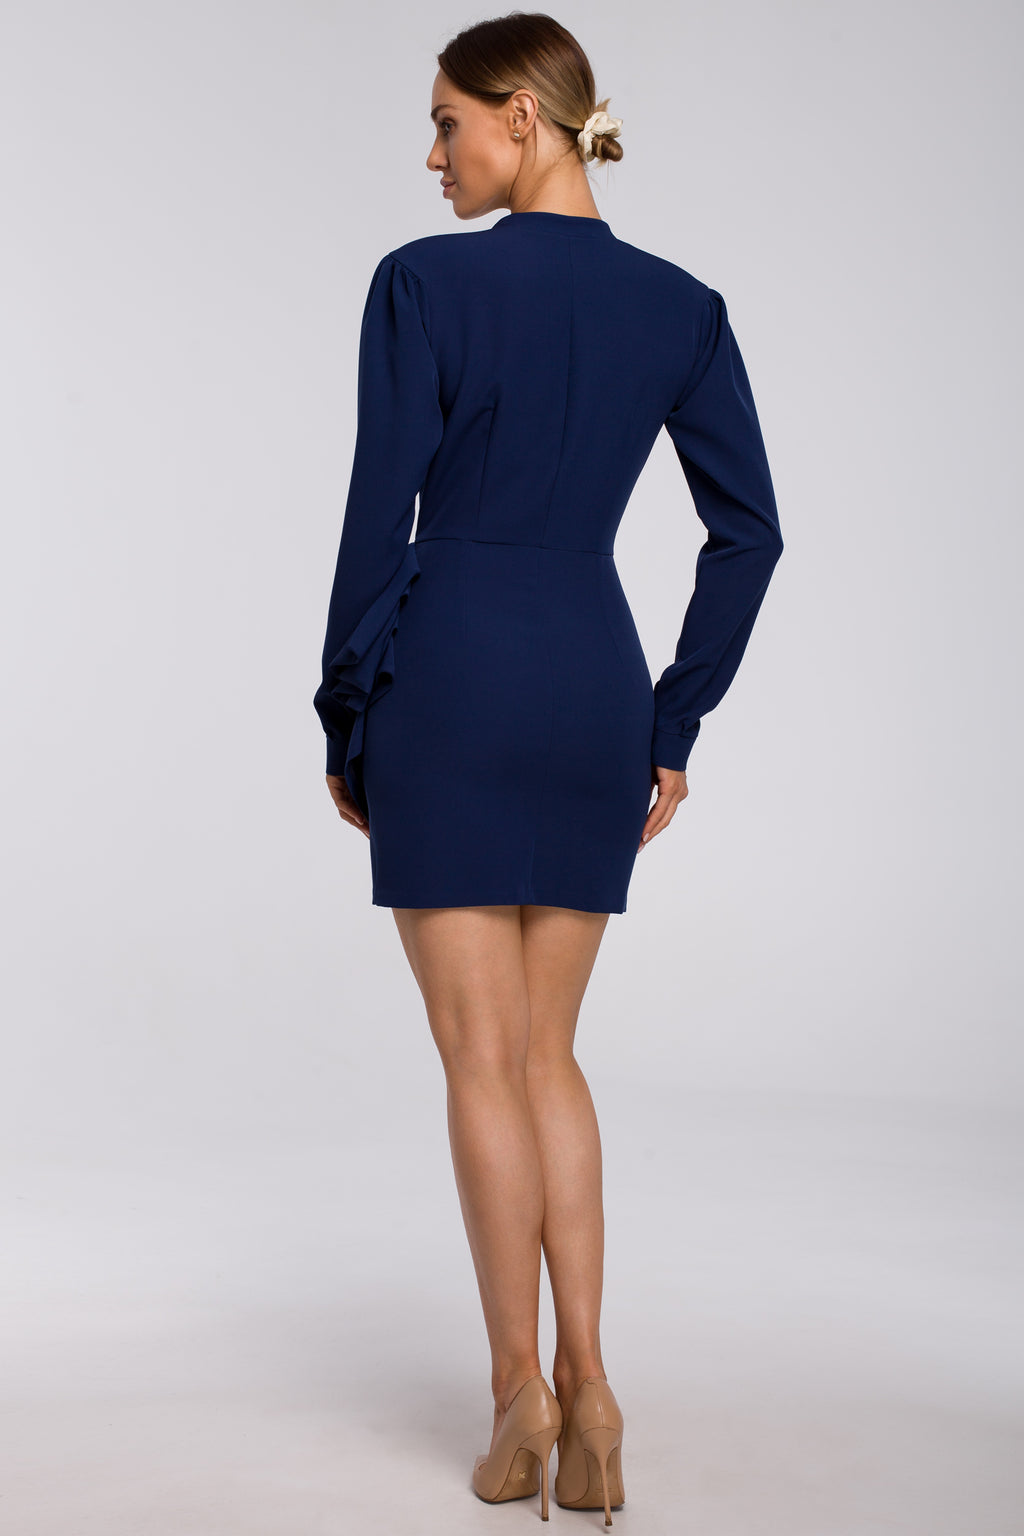 Navy Blue Mini Dress With Draped Side Detail - So Chic Boutique